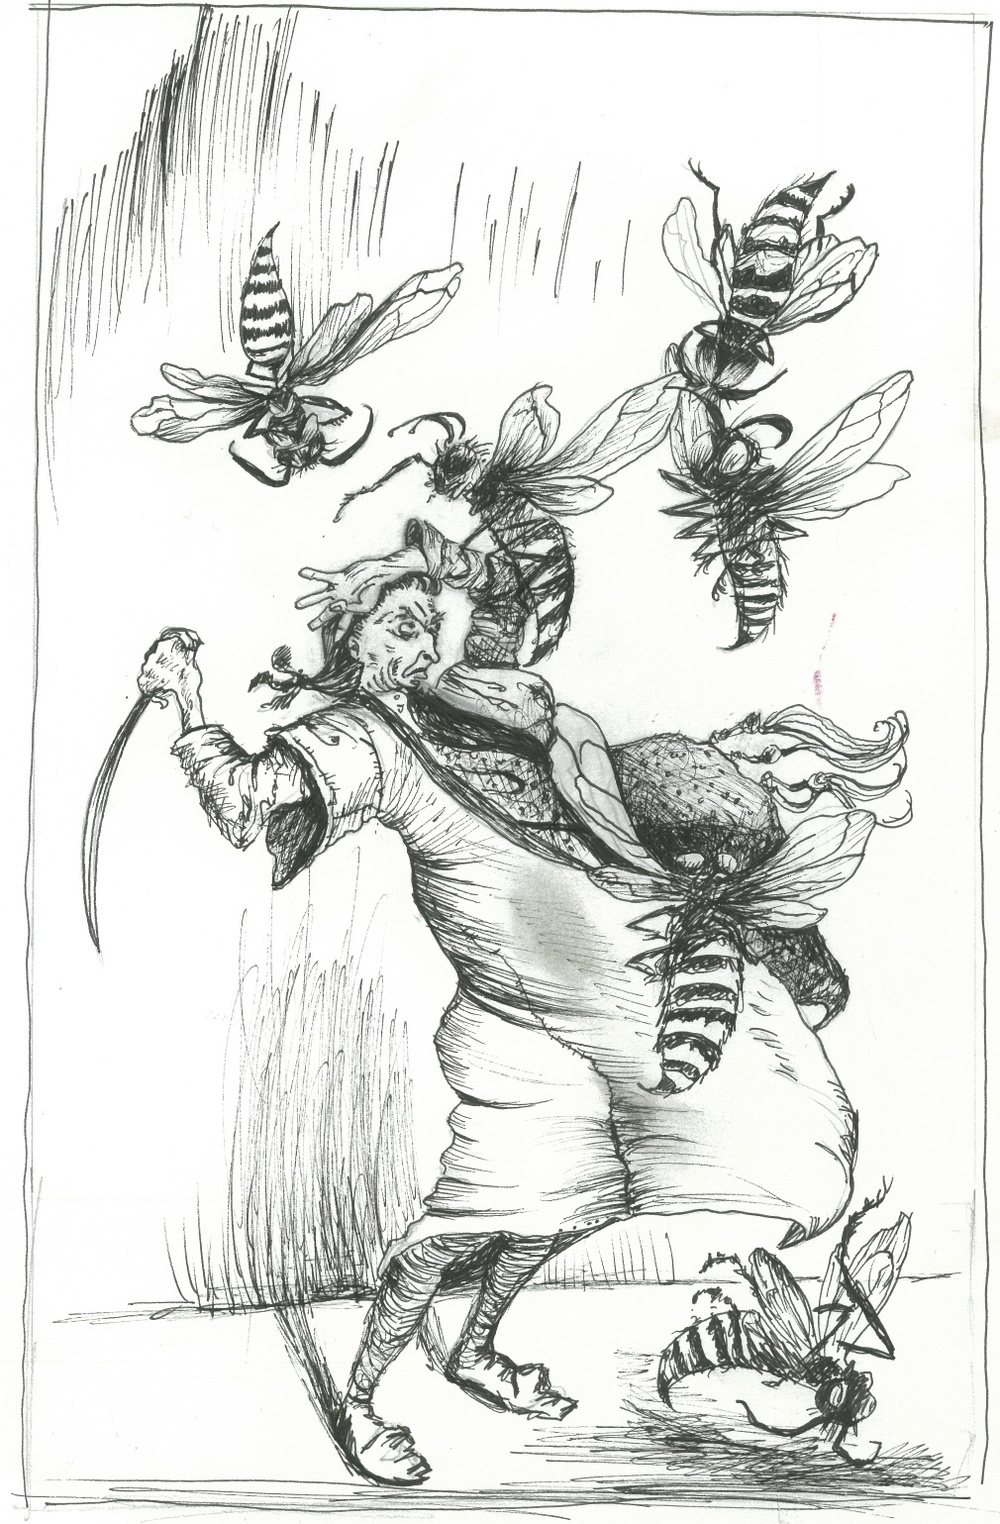 As a drawing exercise I drew this copy of one of my favorite things: Arthur Rackham's illustration for Gulliver's Travels.